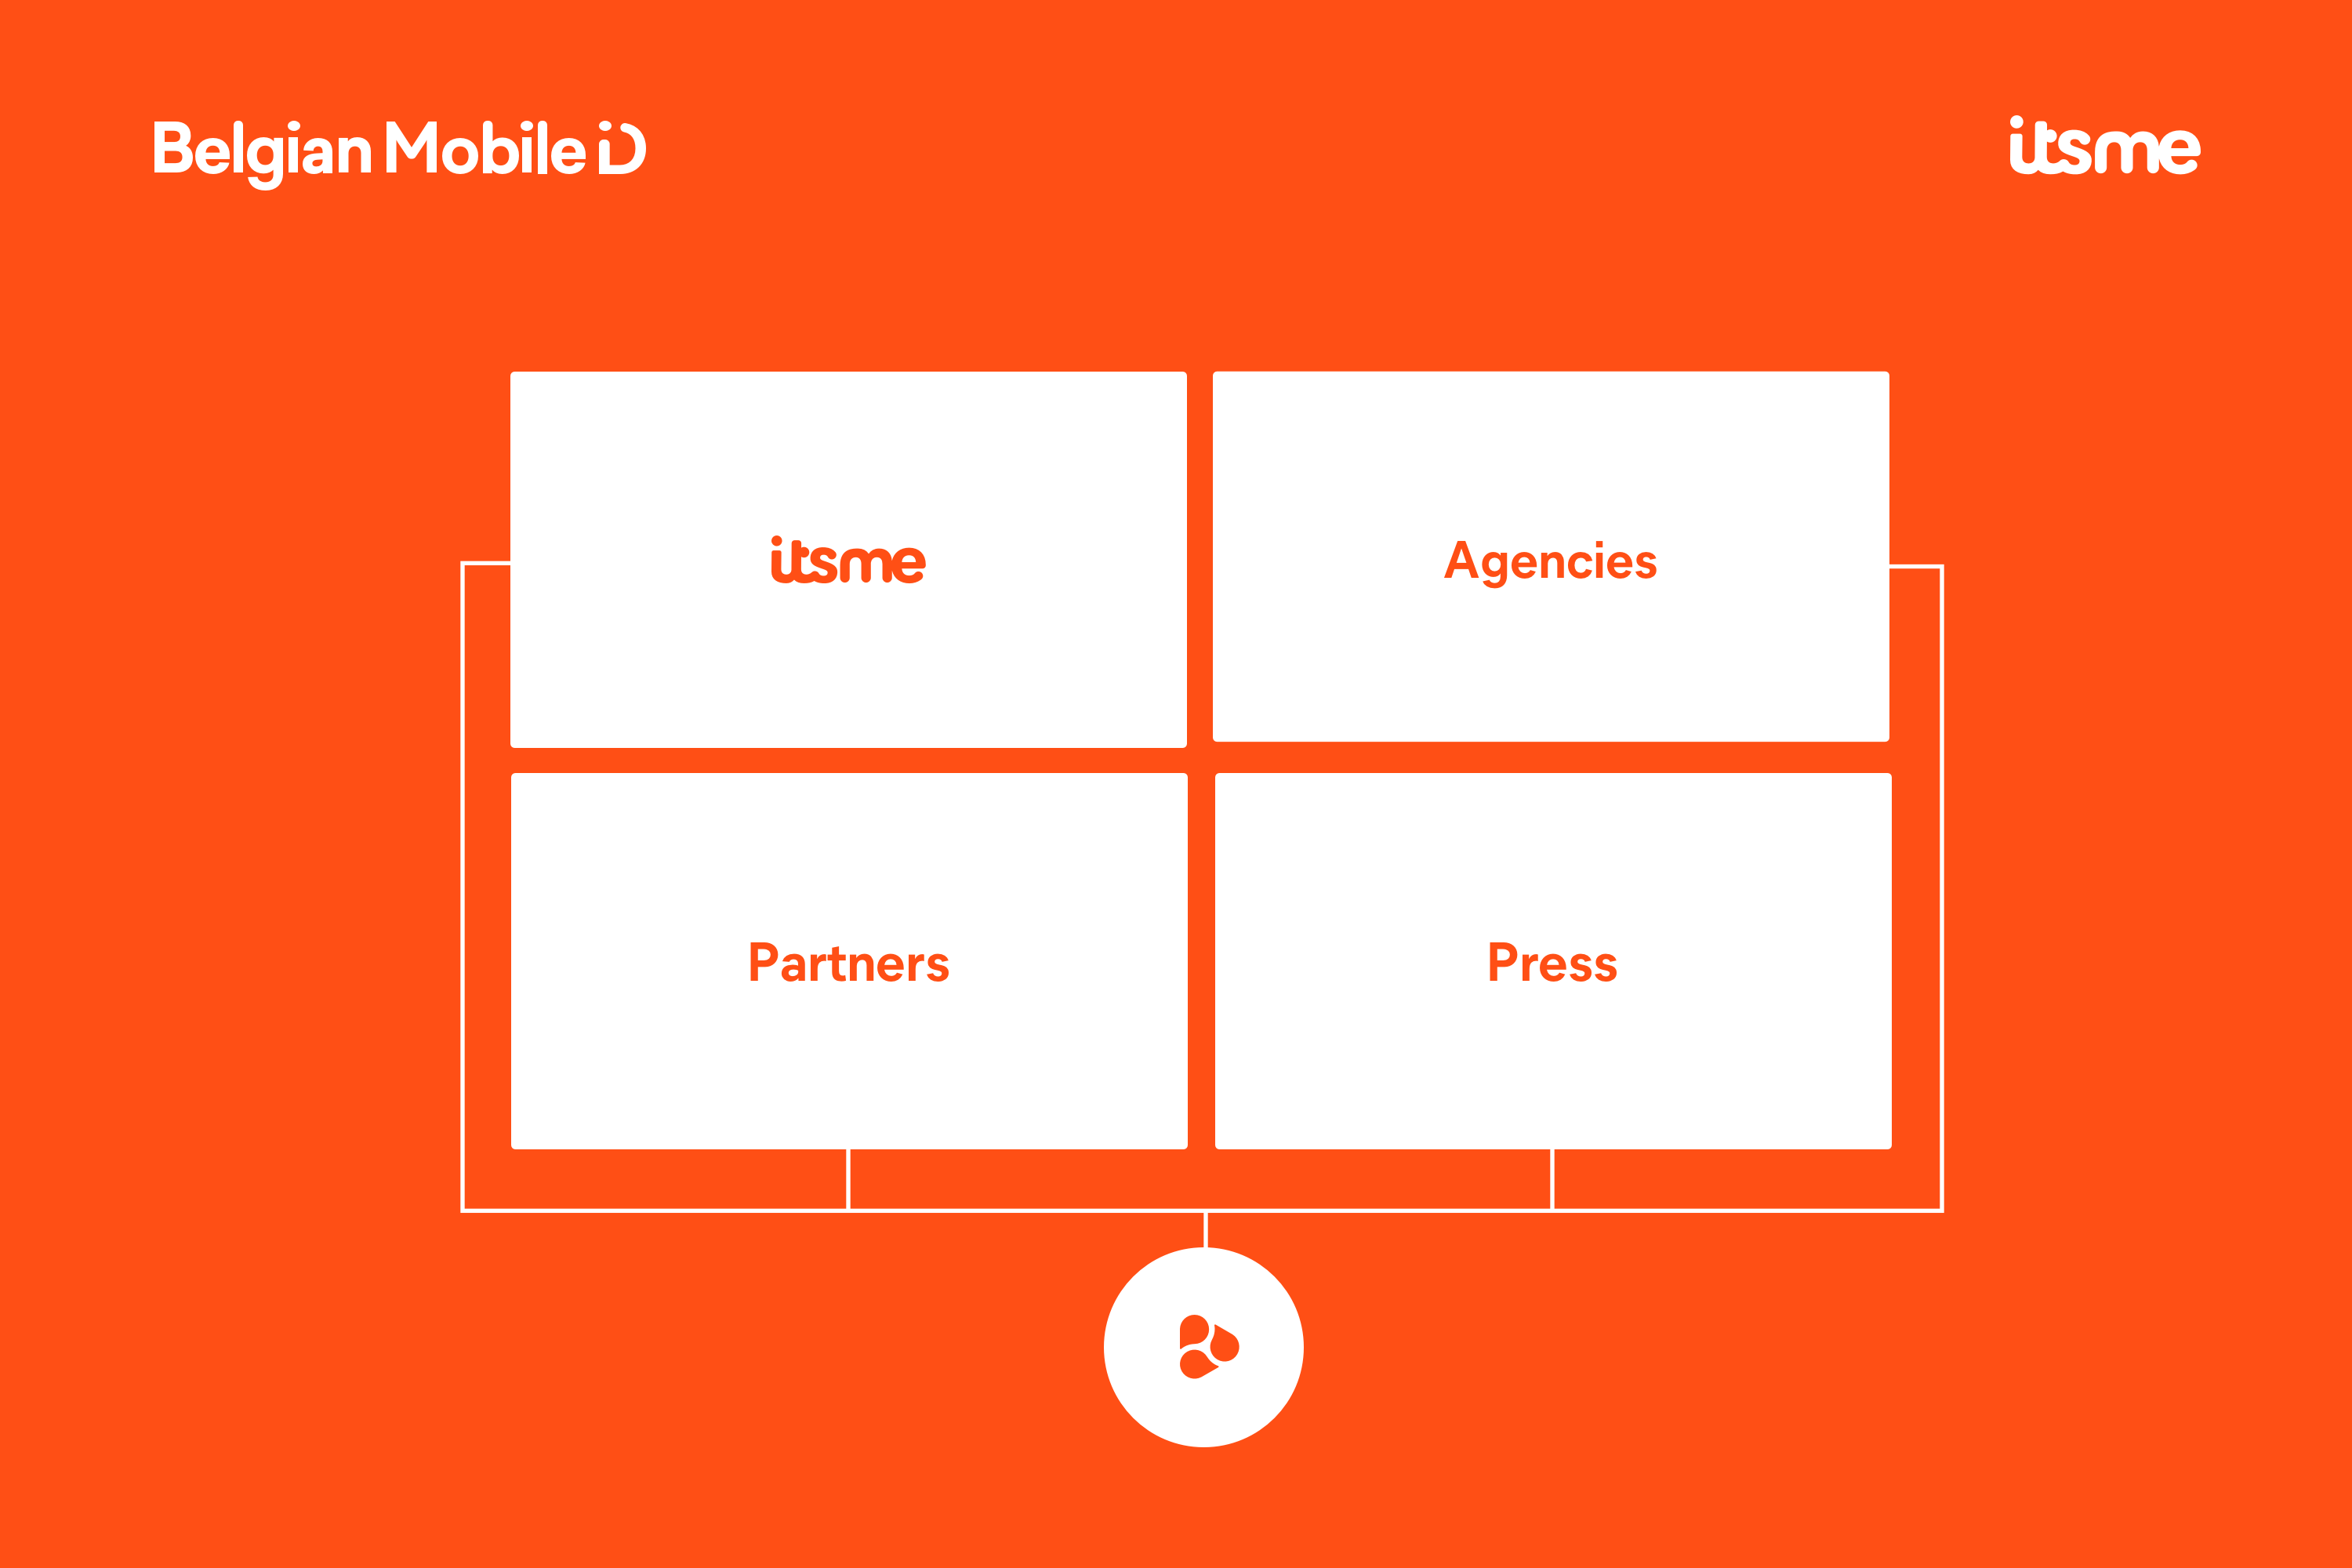 belgian-mobile-id-internal-external-collab-orange